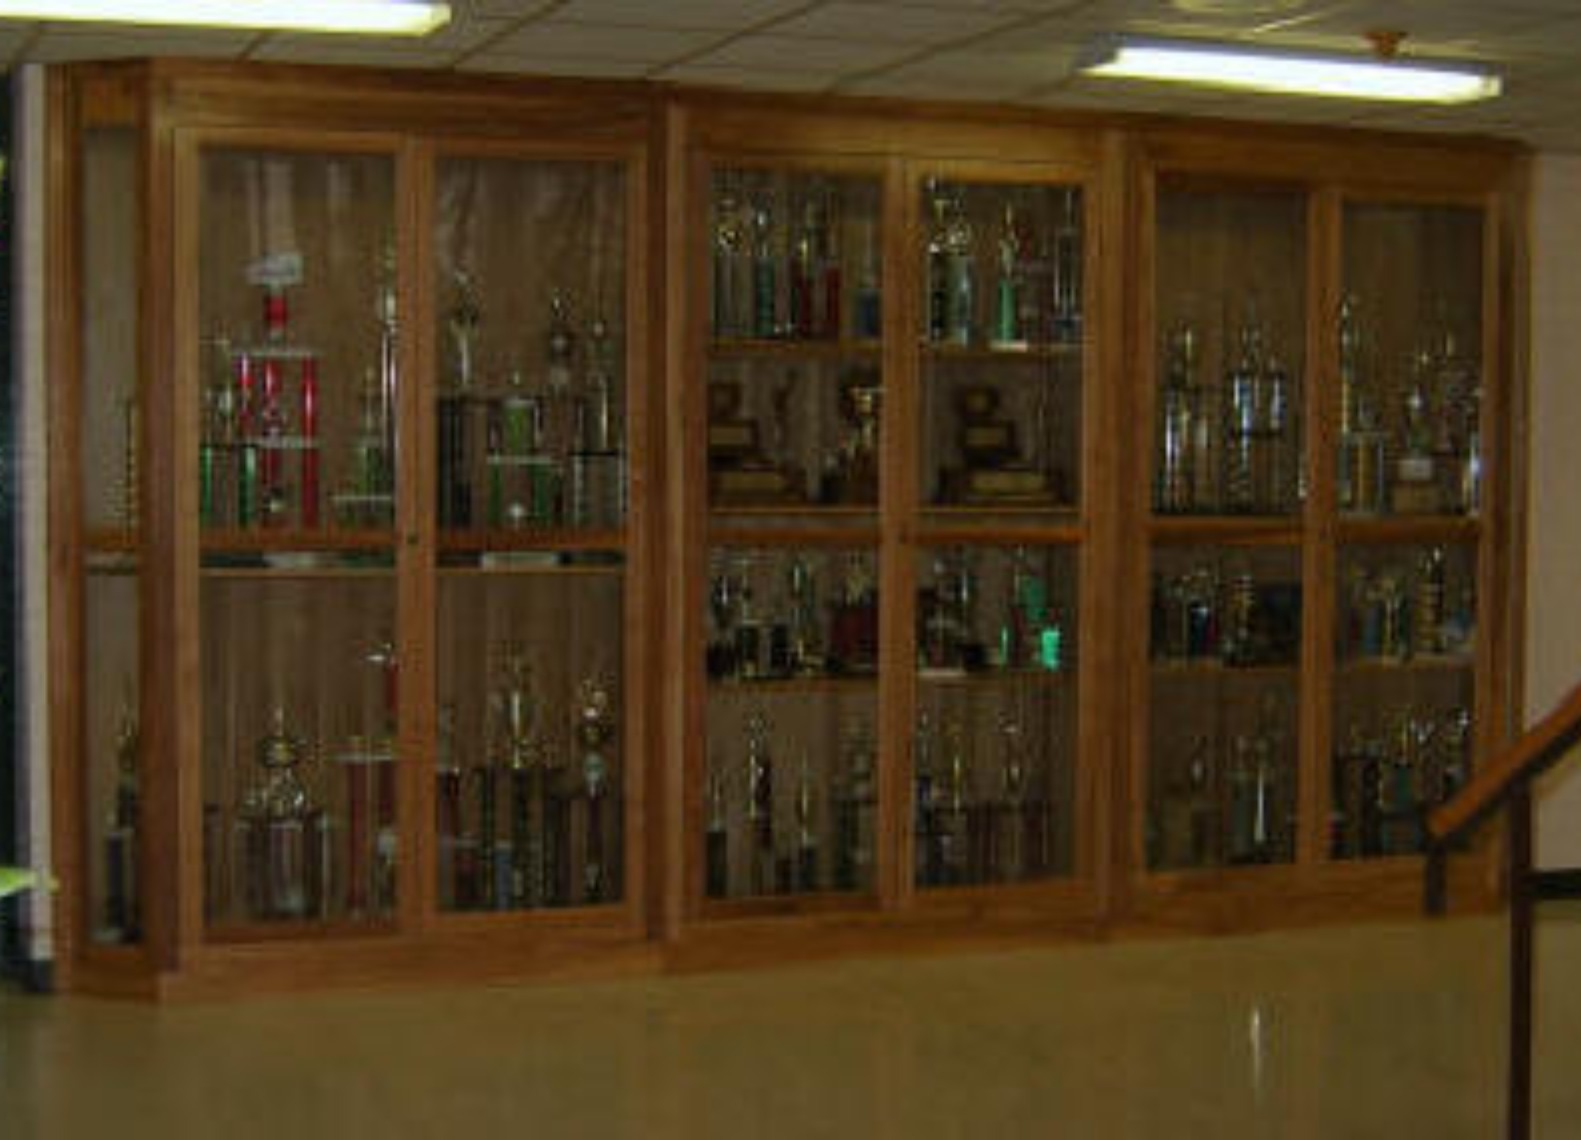 This set of trophy cases was built for a local high school. The cases are 21 feet across and 9 feet high and were built in three sections. Each section sits on a 4 inch base which allowed the units to be raised upright and fit close to the ceiling.